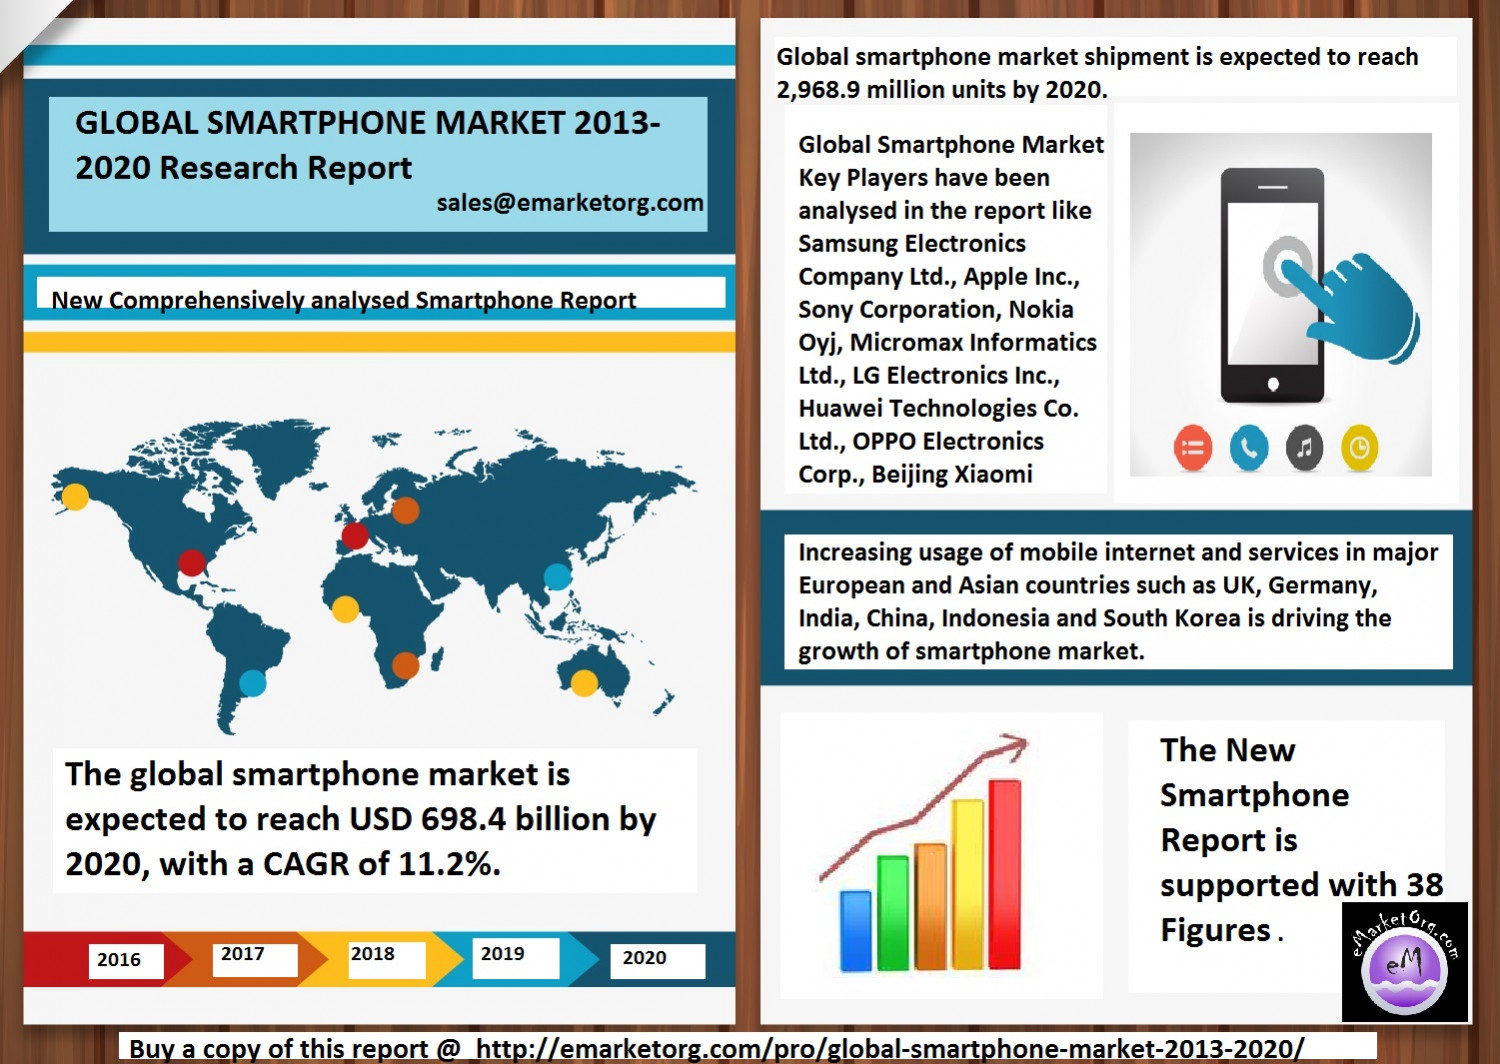 Smartphone Market Research Report with 2020 Global Forecasts Infographic